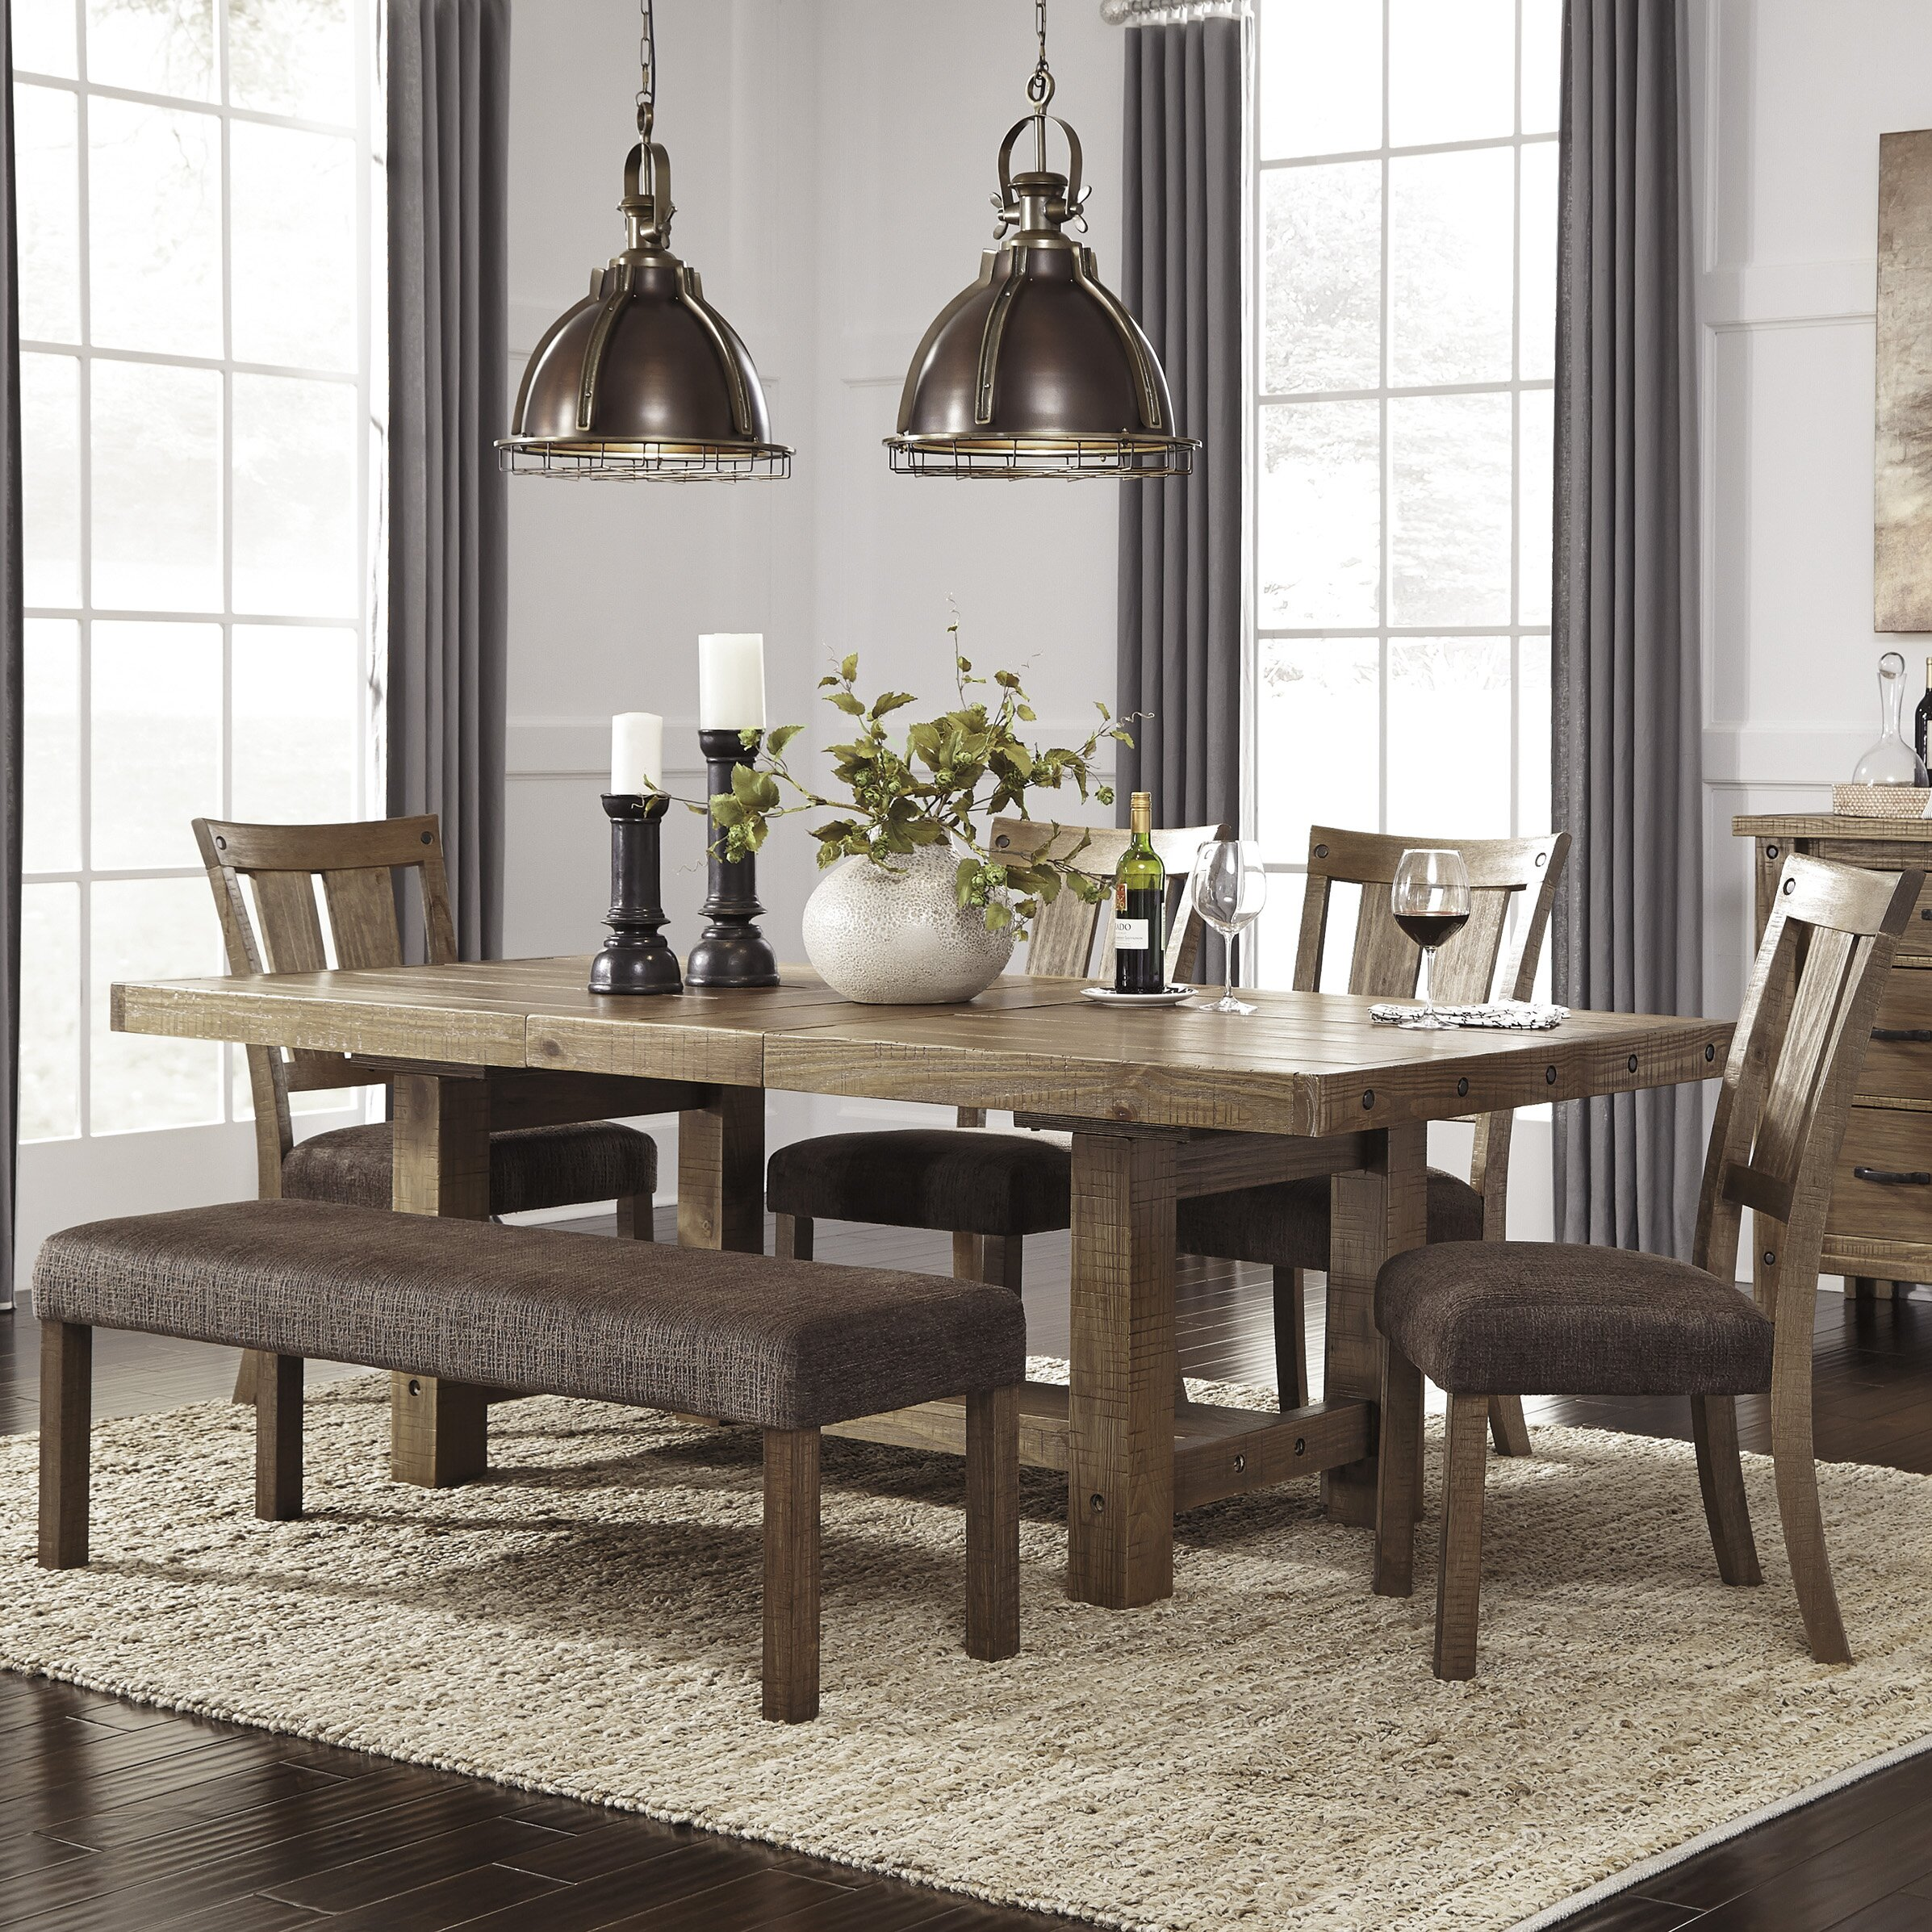 Dinning Set: Signature Design By Ashley 9 Piece Dining Set & Reviews